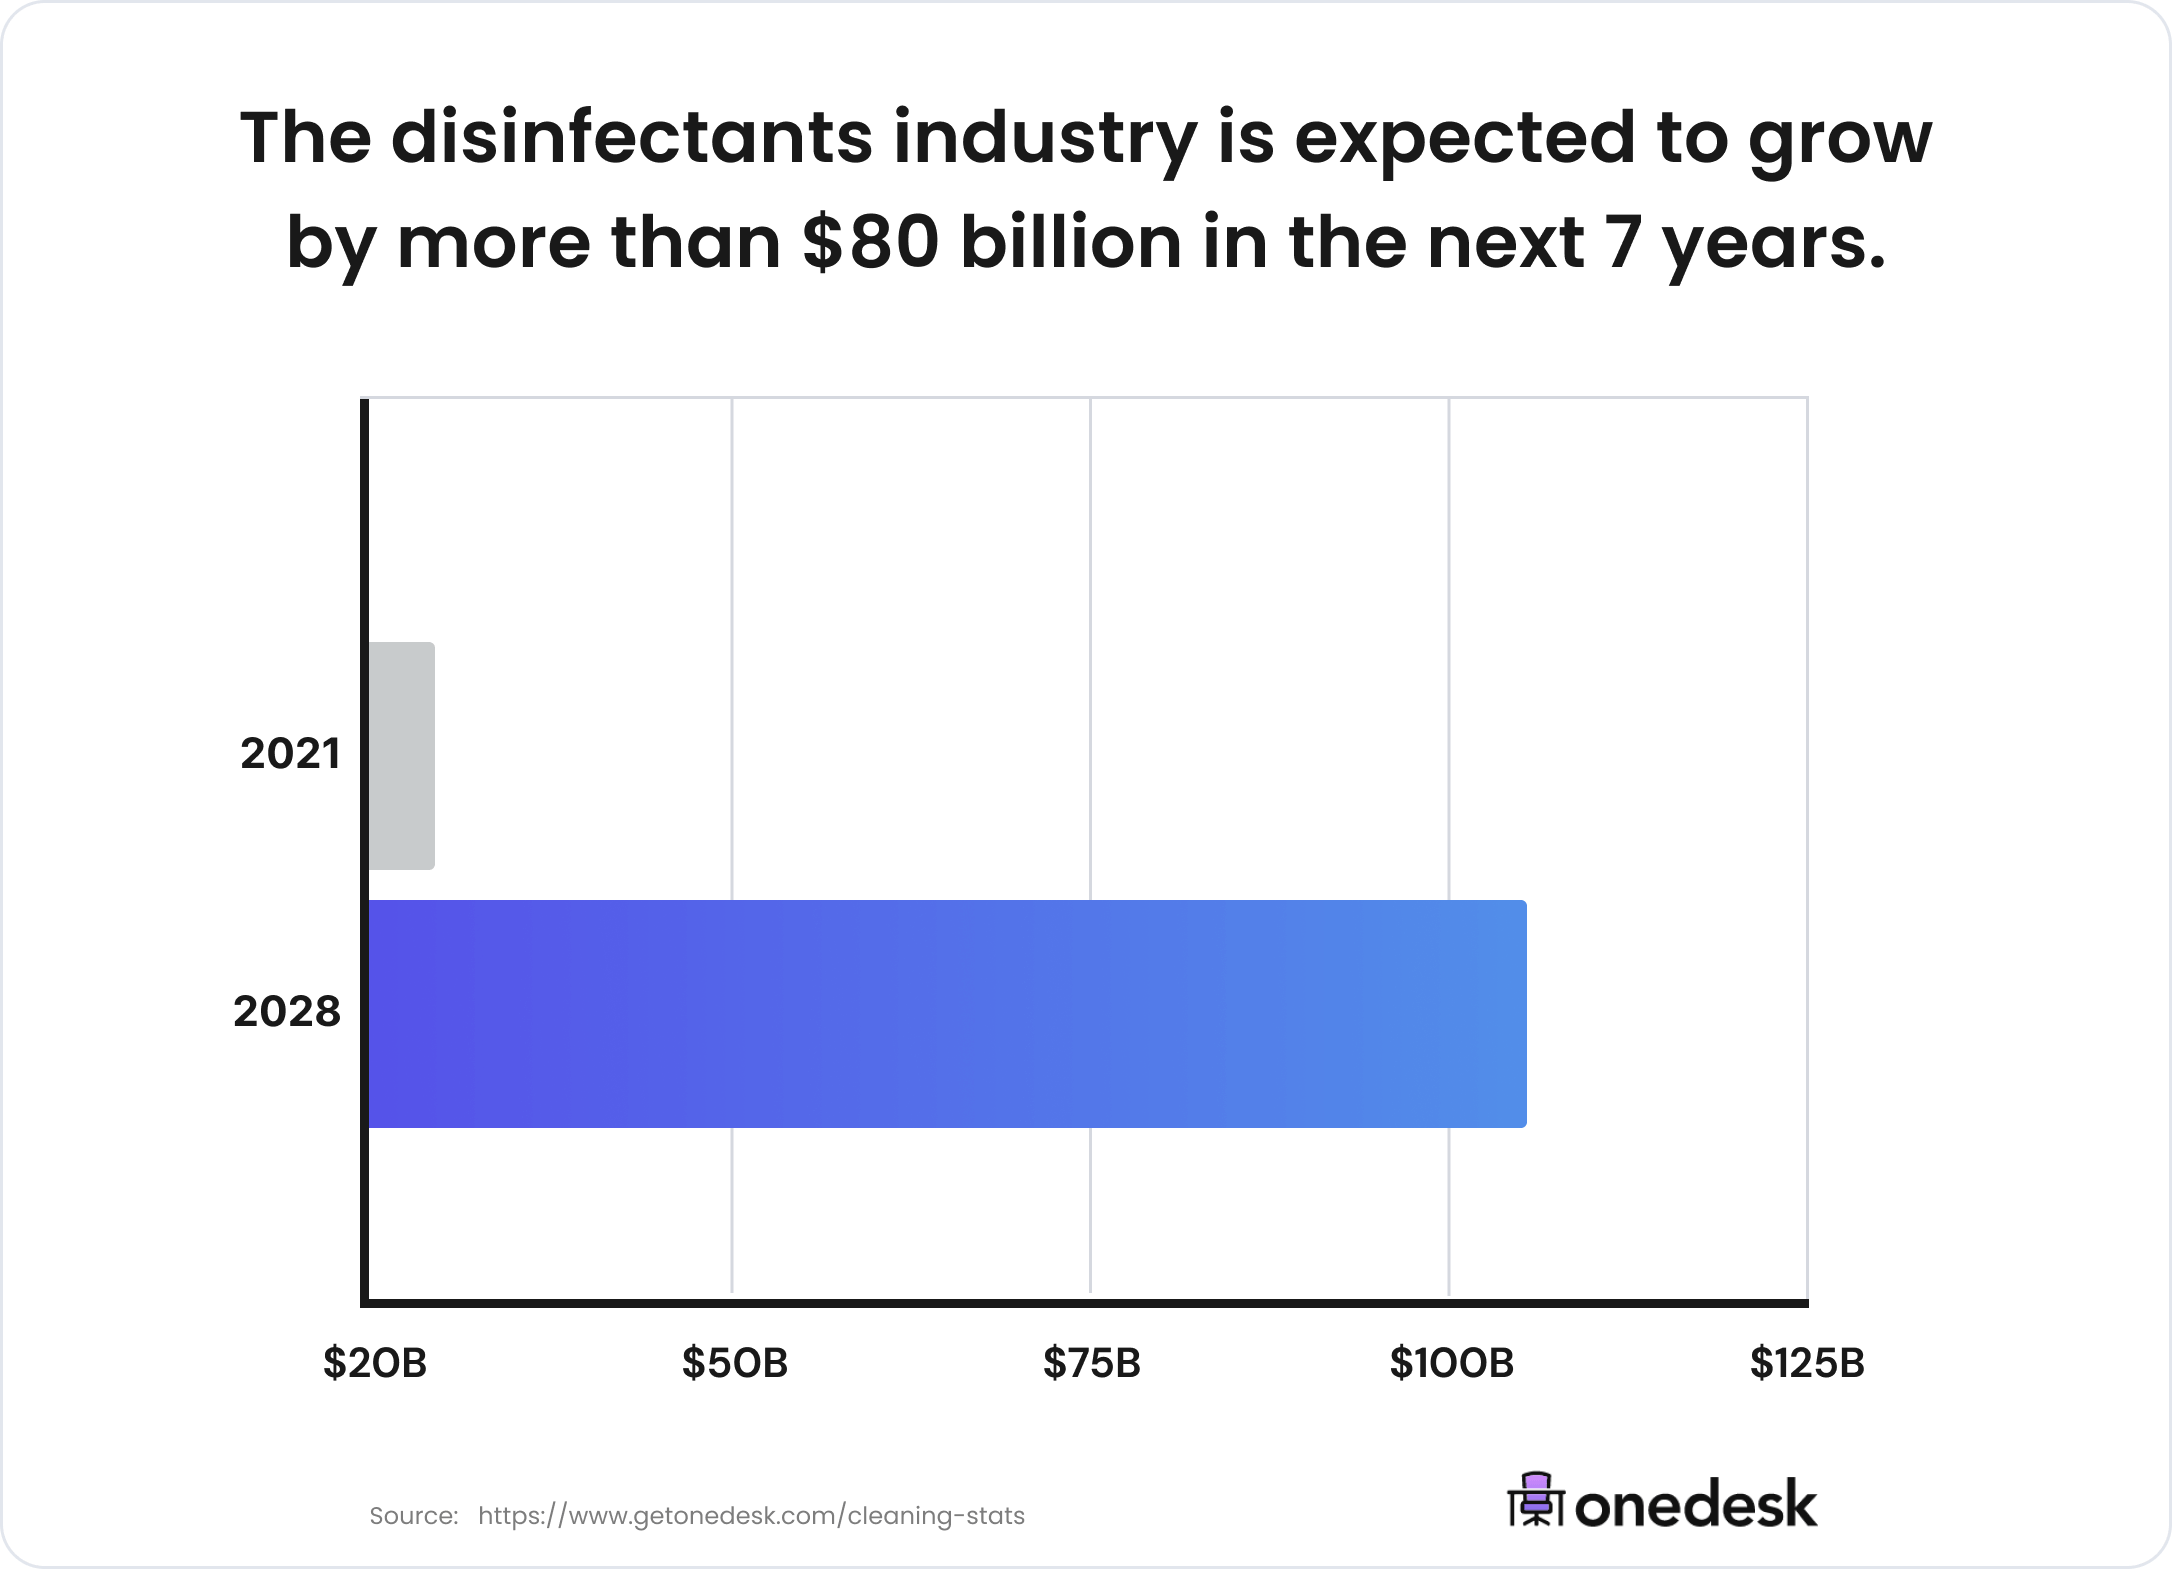 disinfectants industry growth